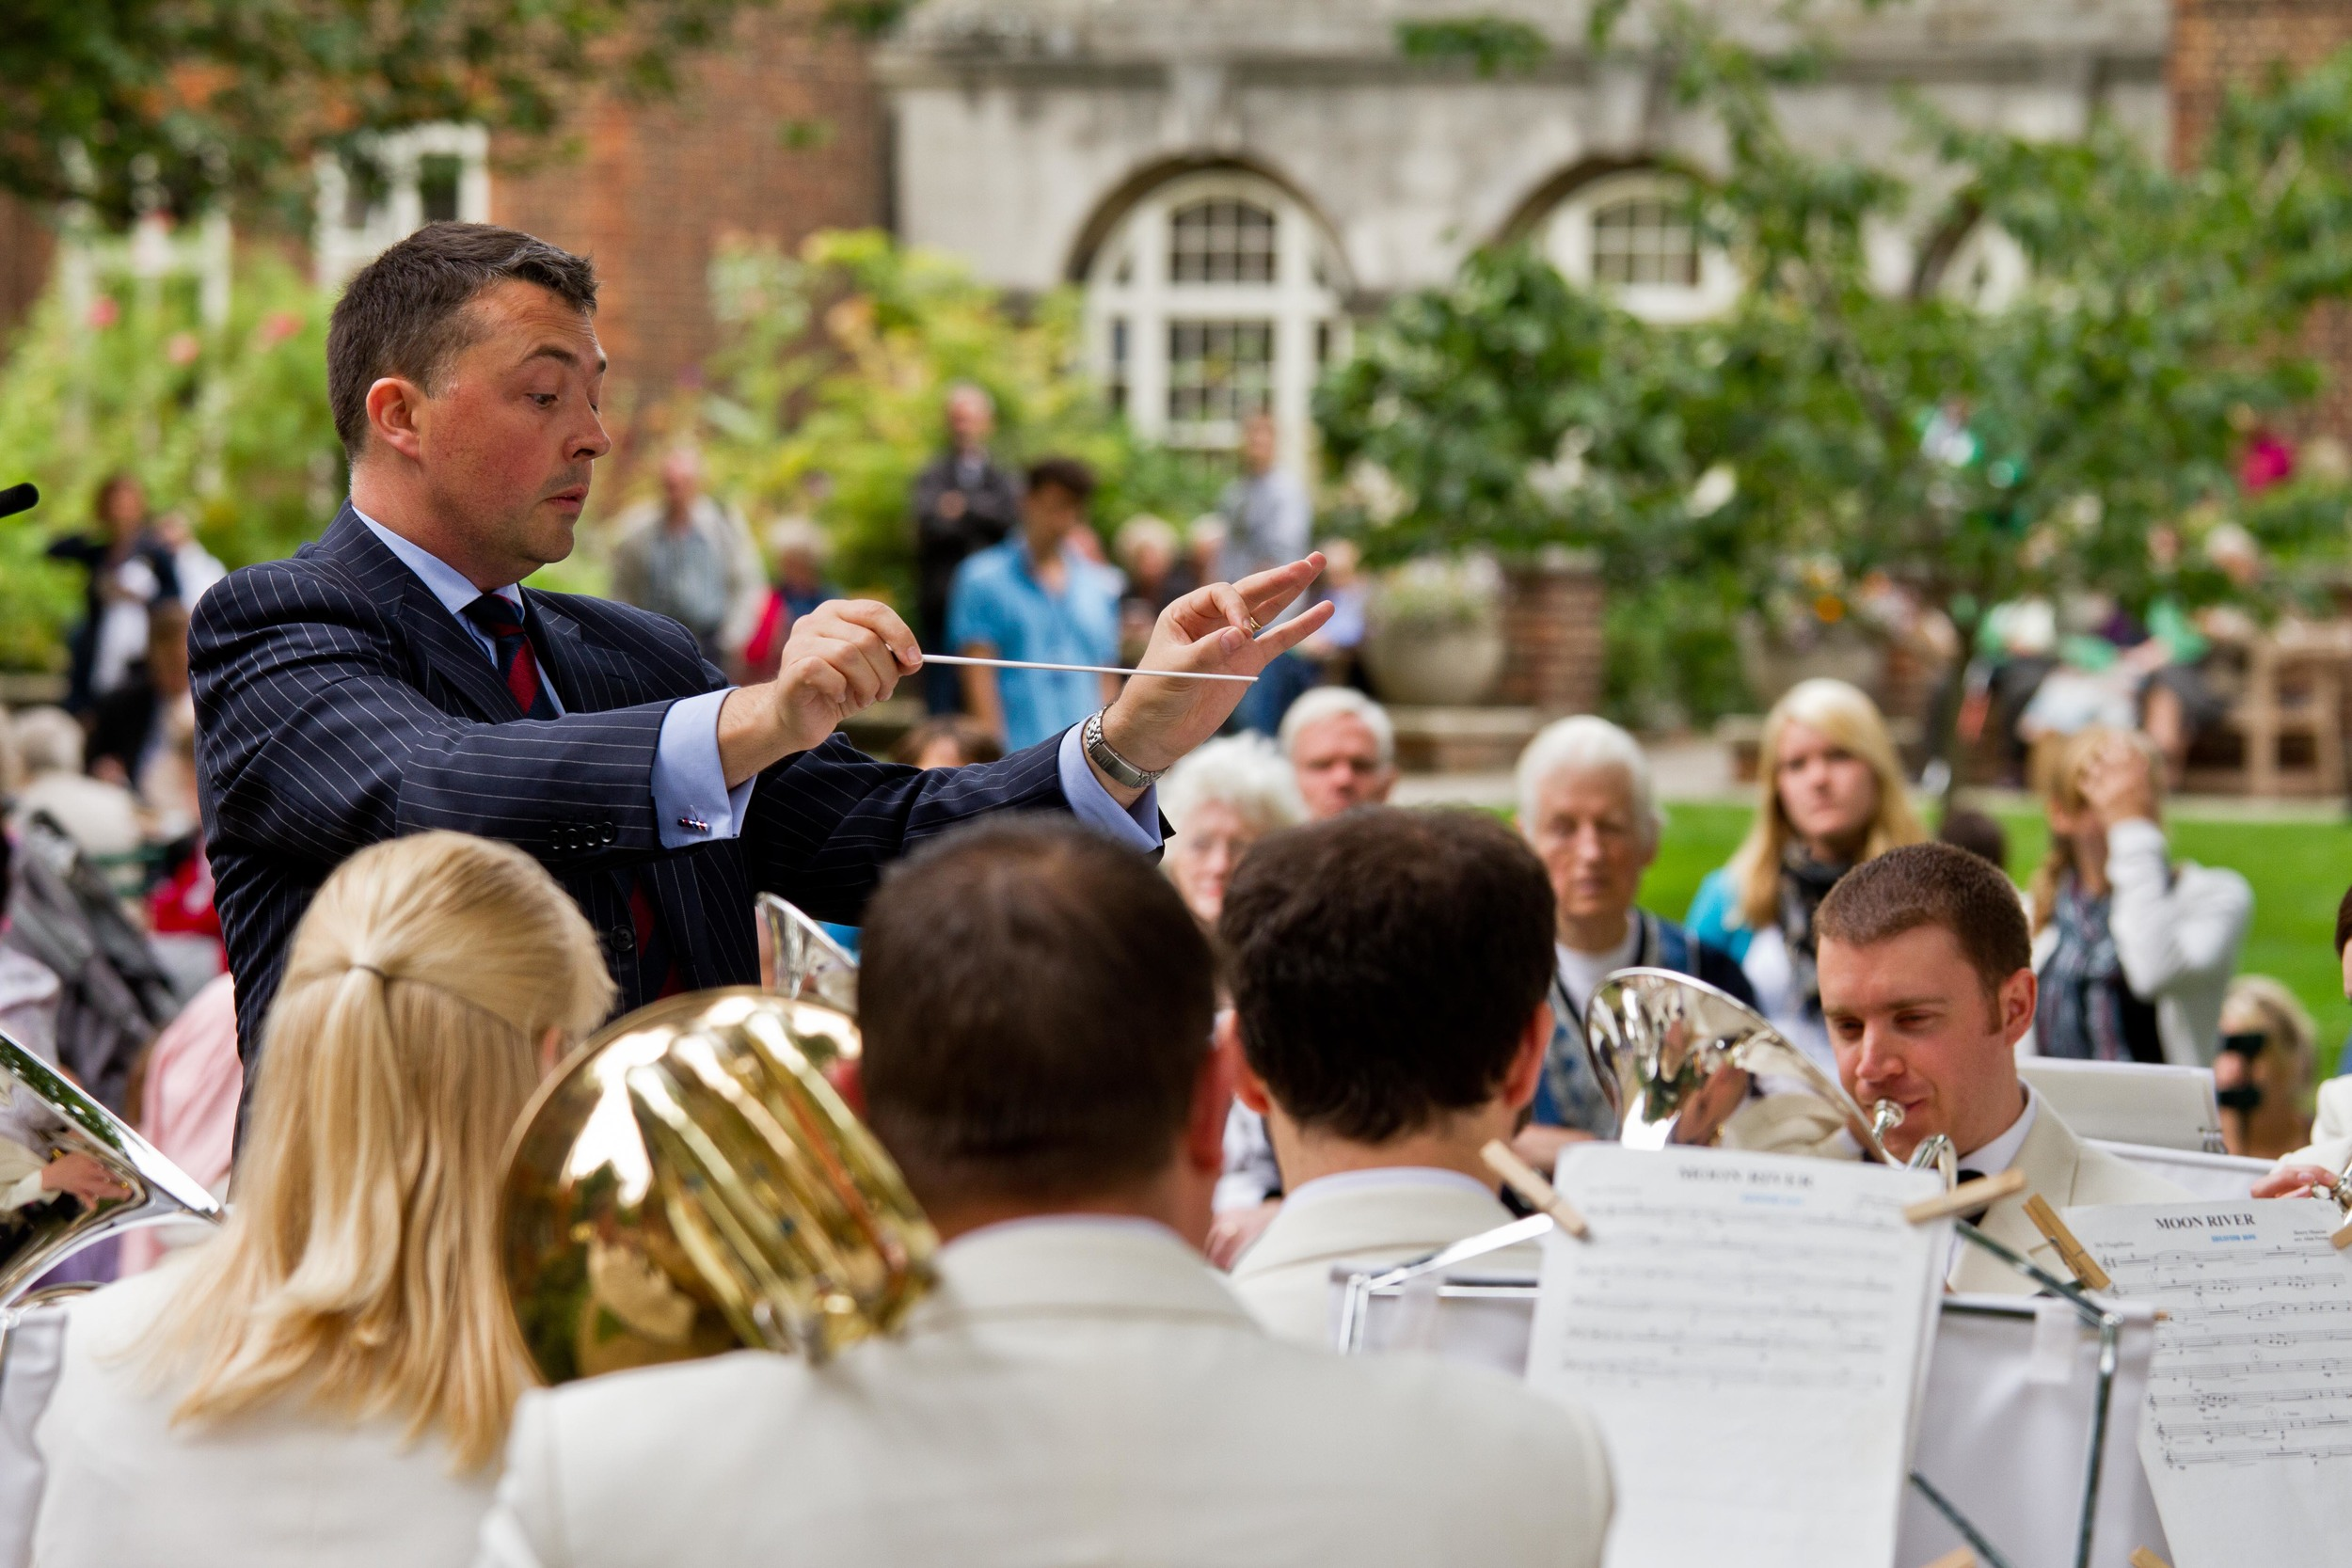 Concert in the gardens of Westminster Abbey